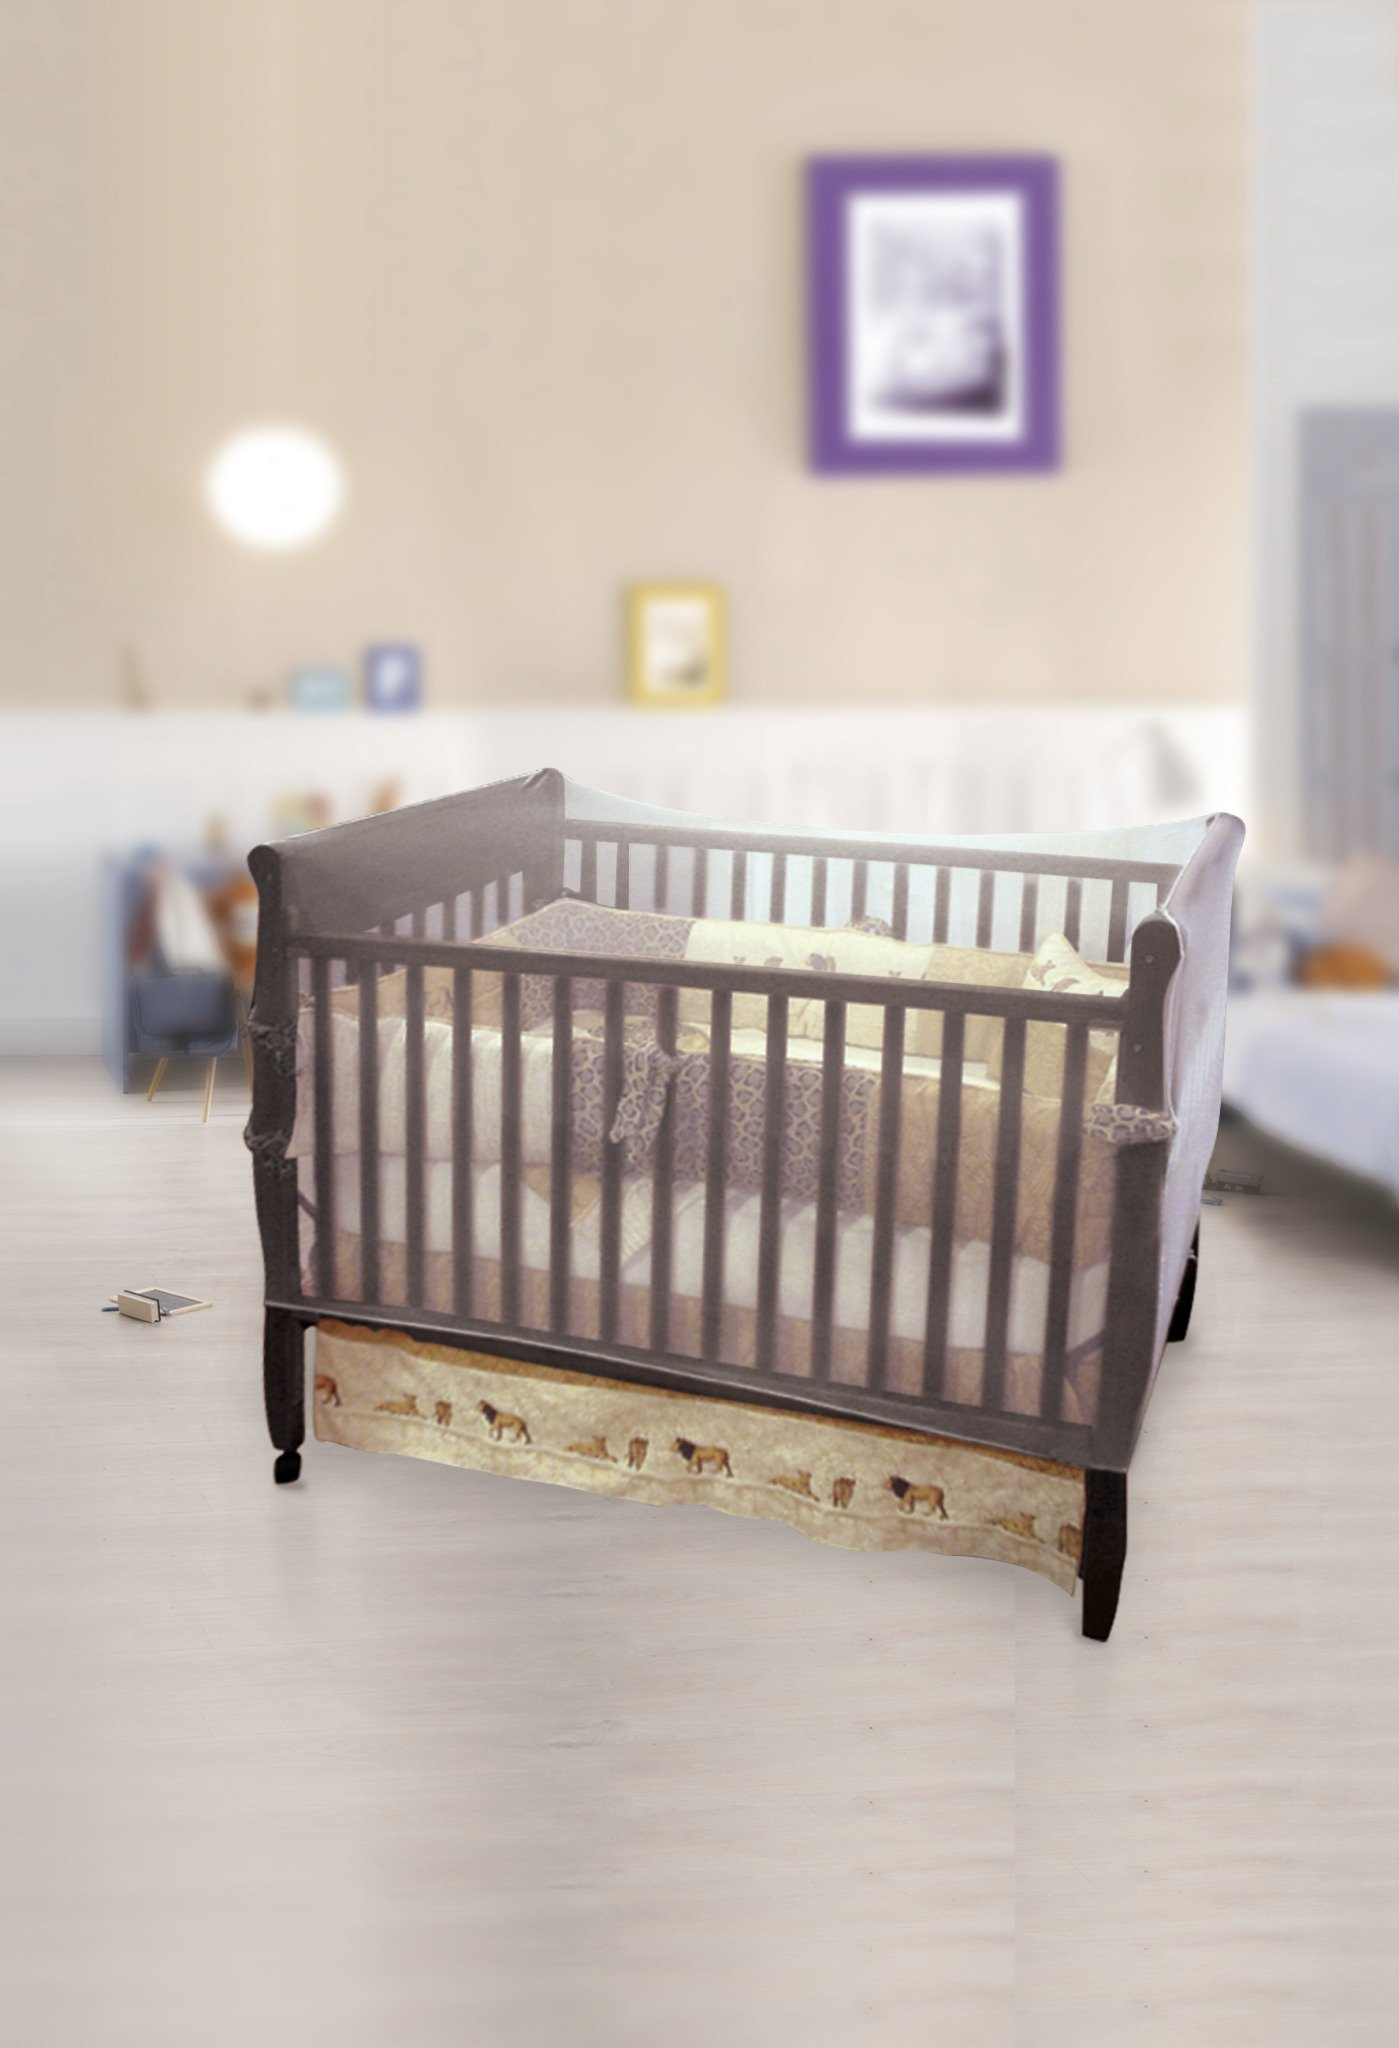 Jeep Crib Universal Size Crib Mosquito Net, White by Jeep (Image #6)